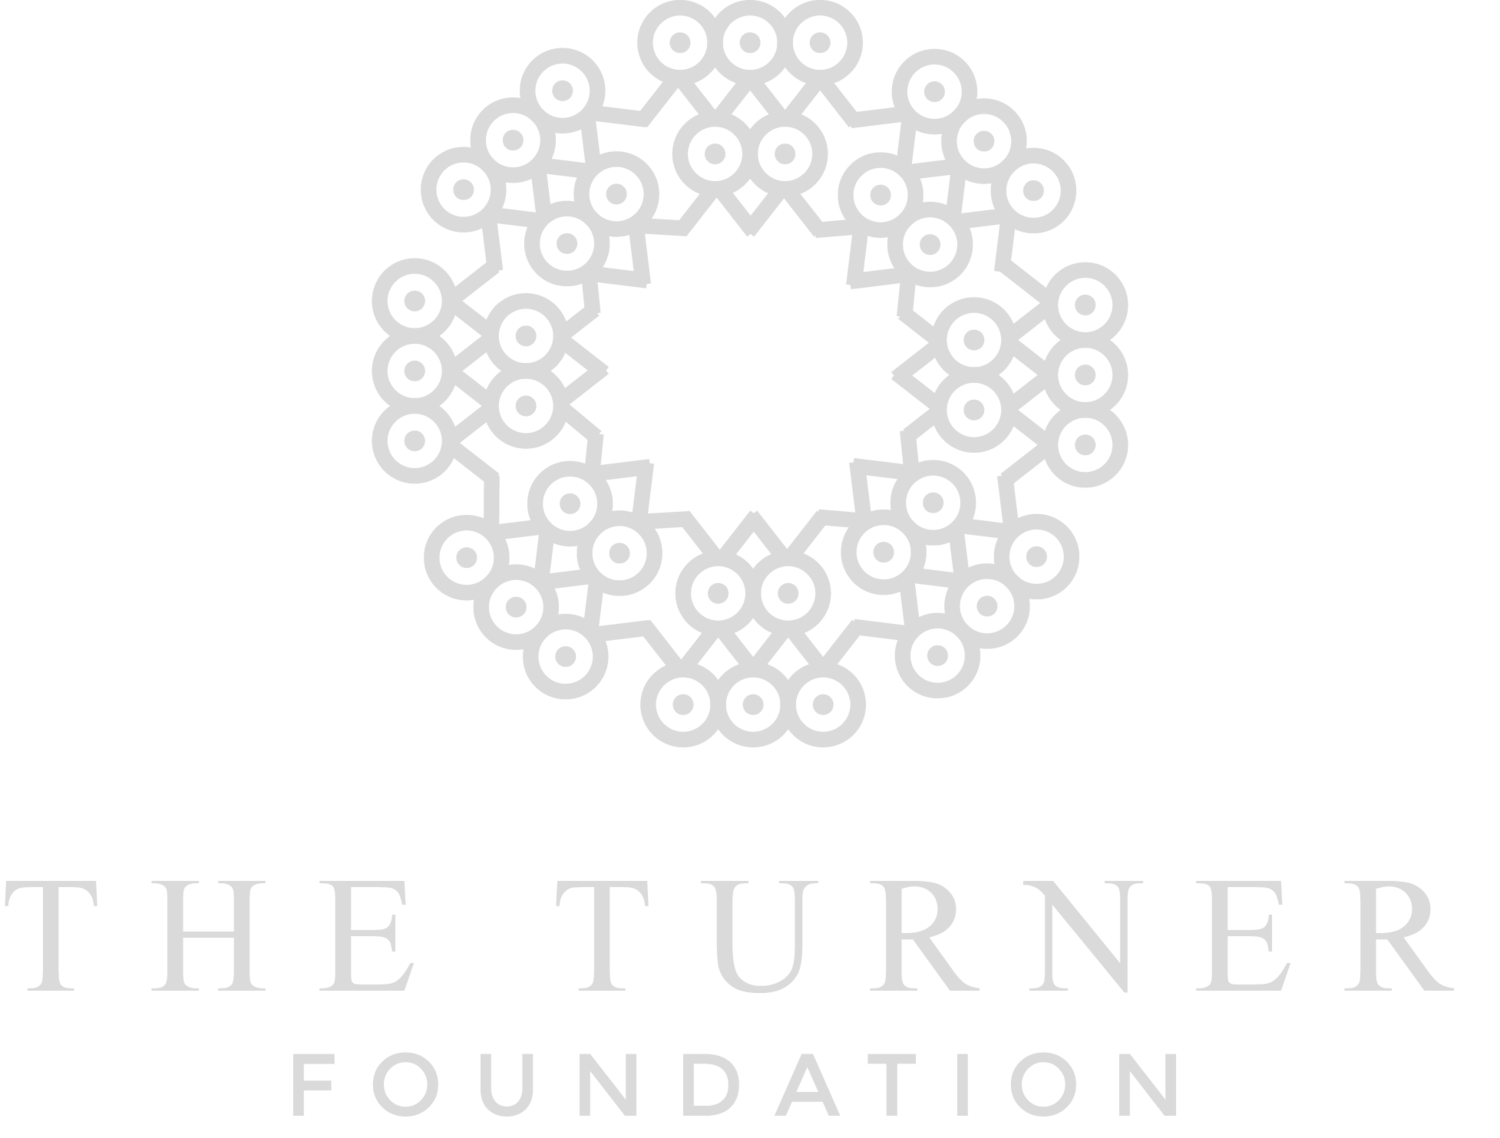 The Turner Foundation